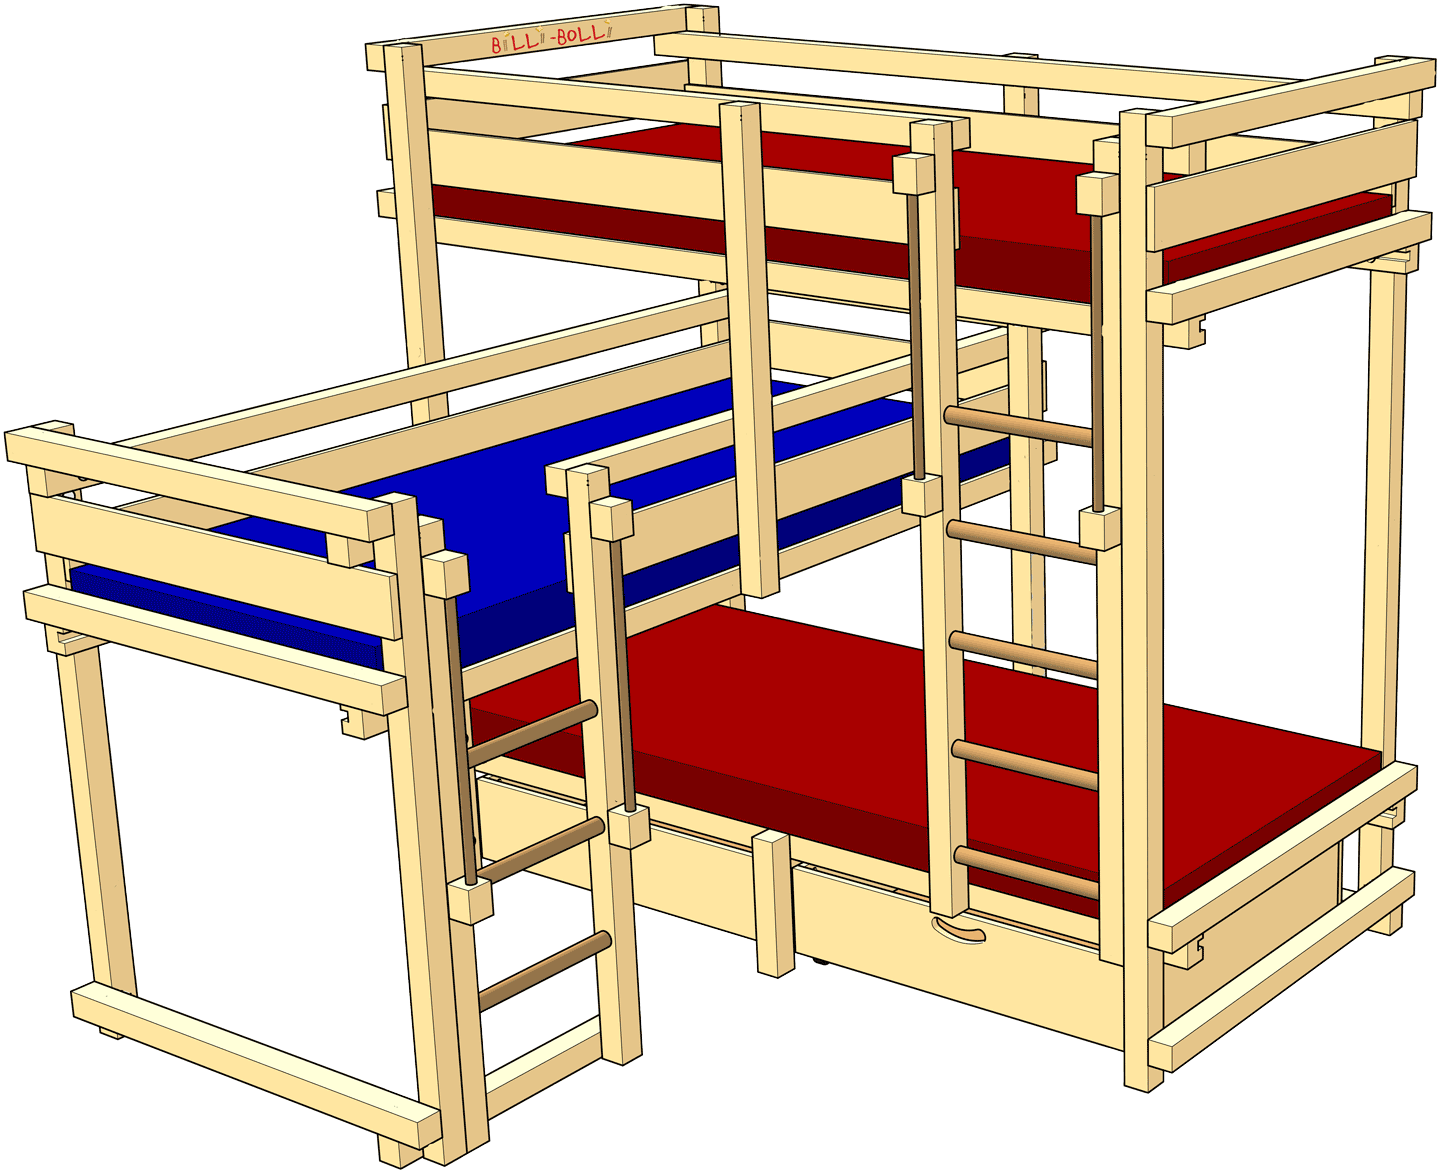 Beds for Three, Type 1A